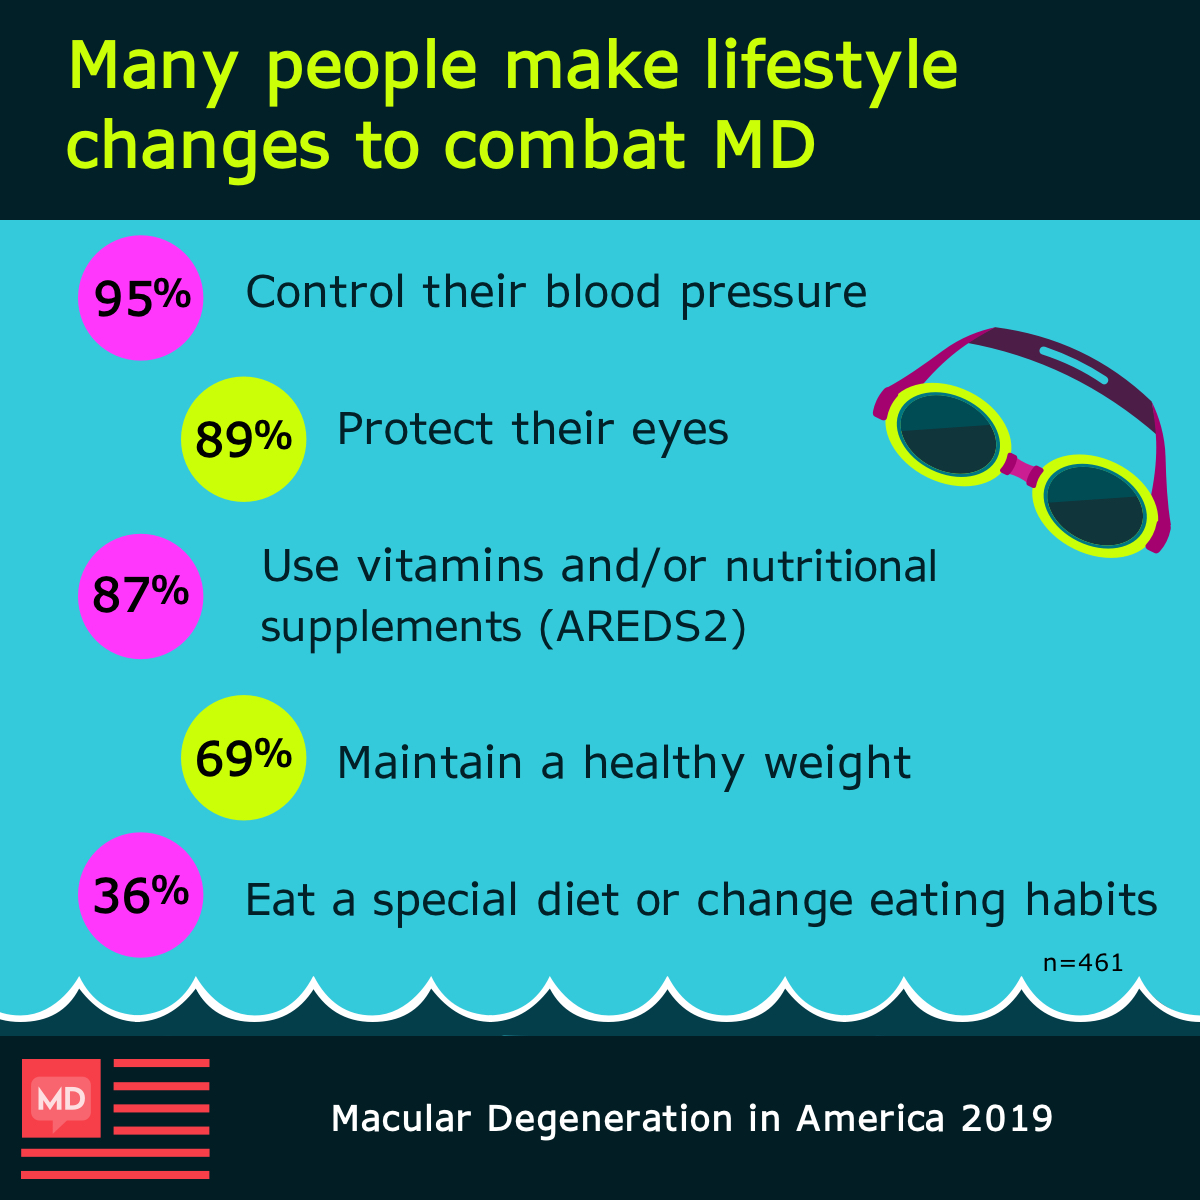 Lifestyle changes respondents made include living a healthier lifestyle and using supplements and vitamins such as AREDS.